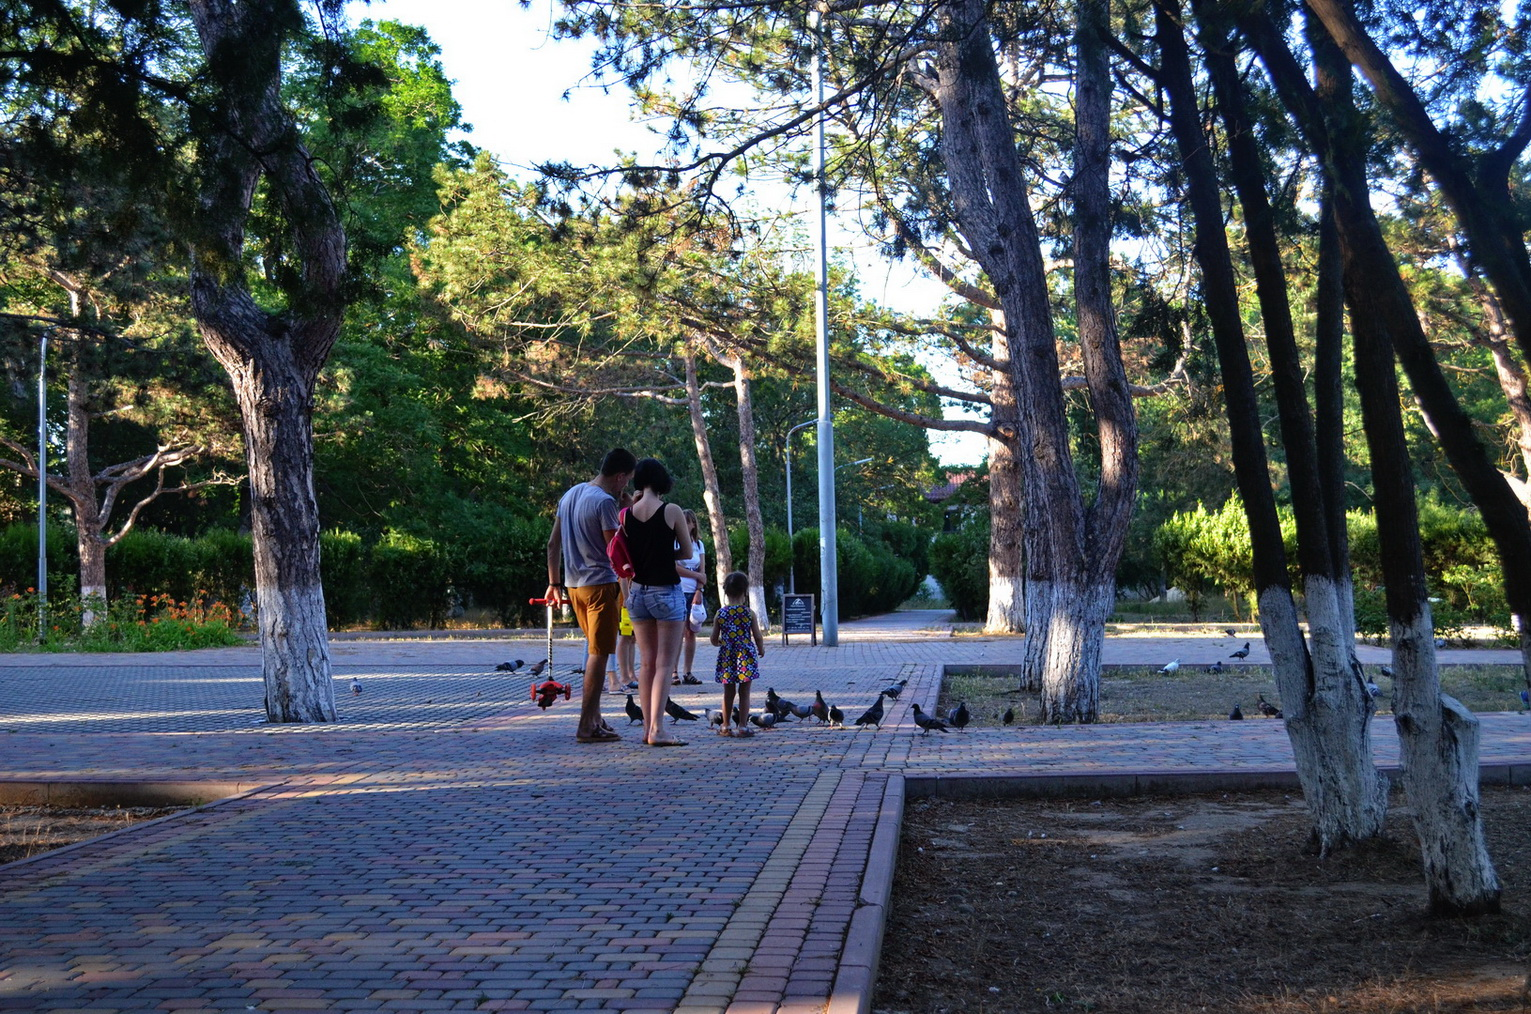 kerch arshincevo 26 06 2020 park 20